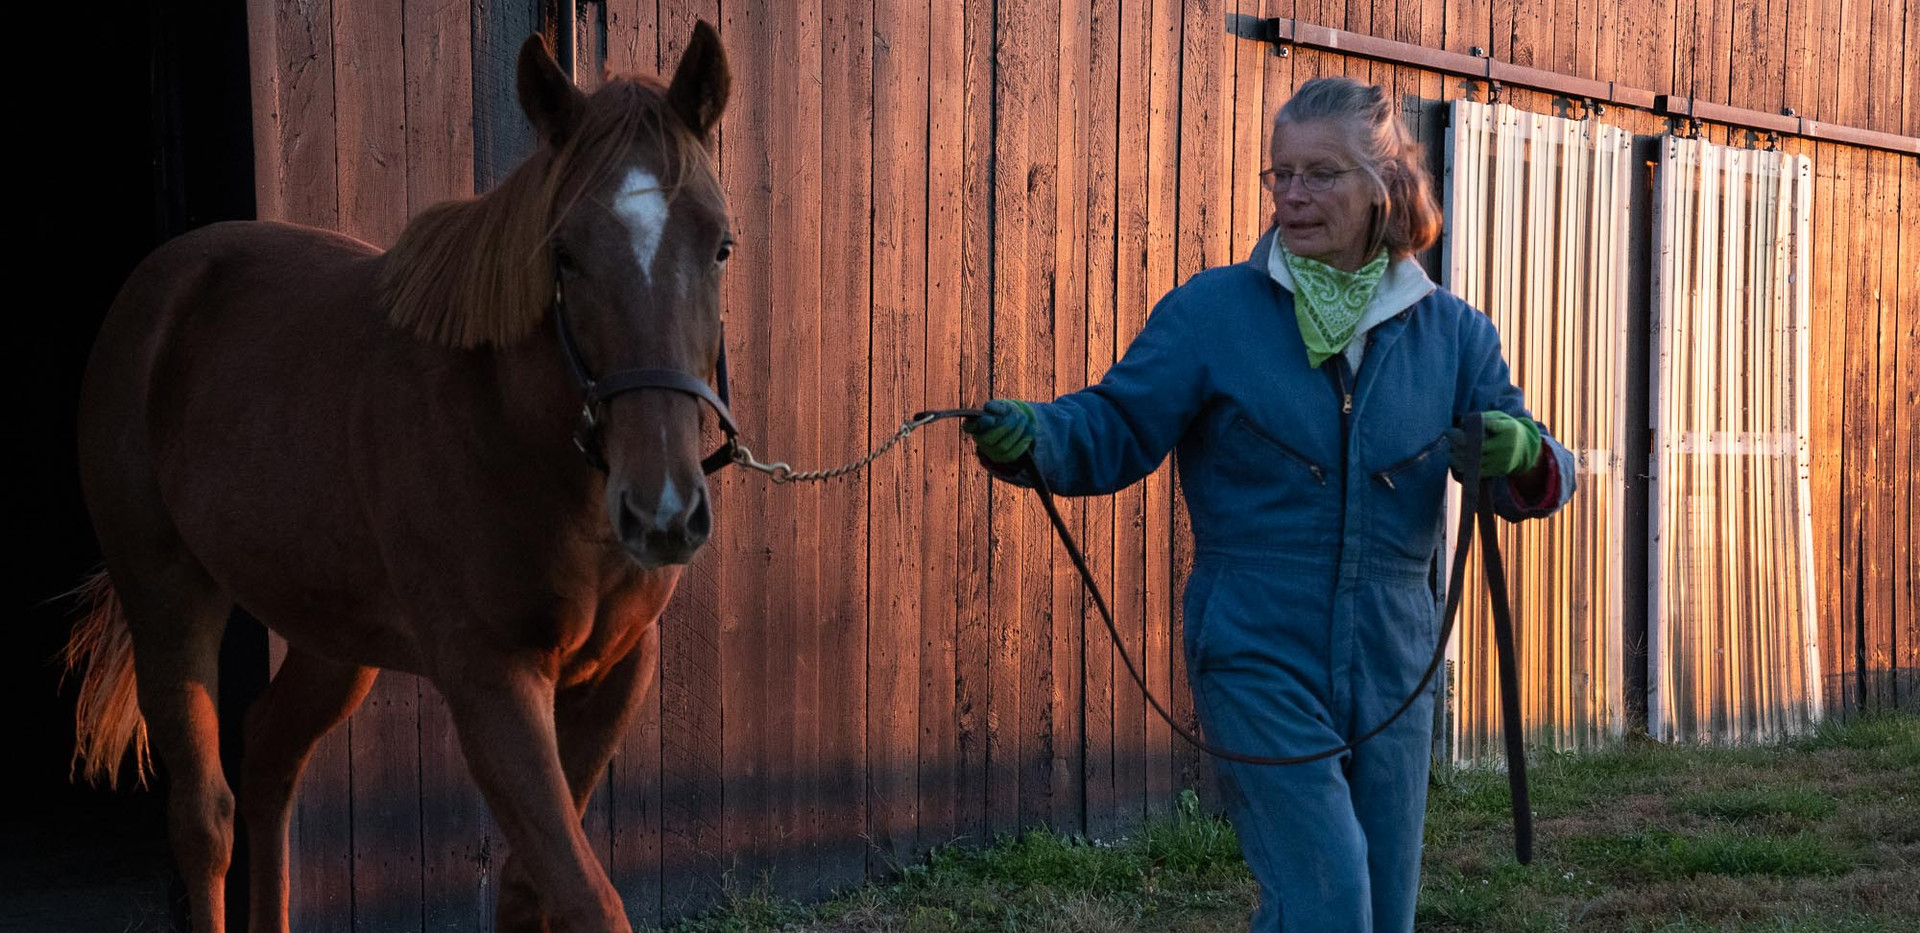 Lena raises thoroughbreds for clients located around the world. The yearling in this photo was shipped to Sweden.